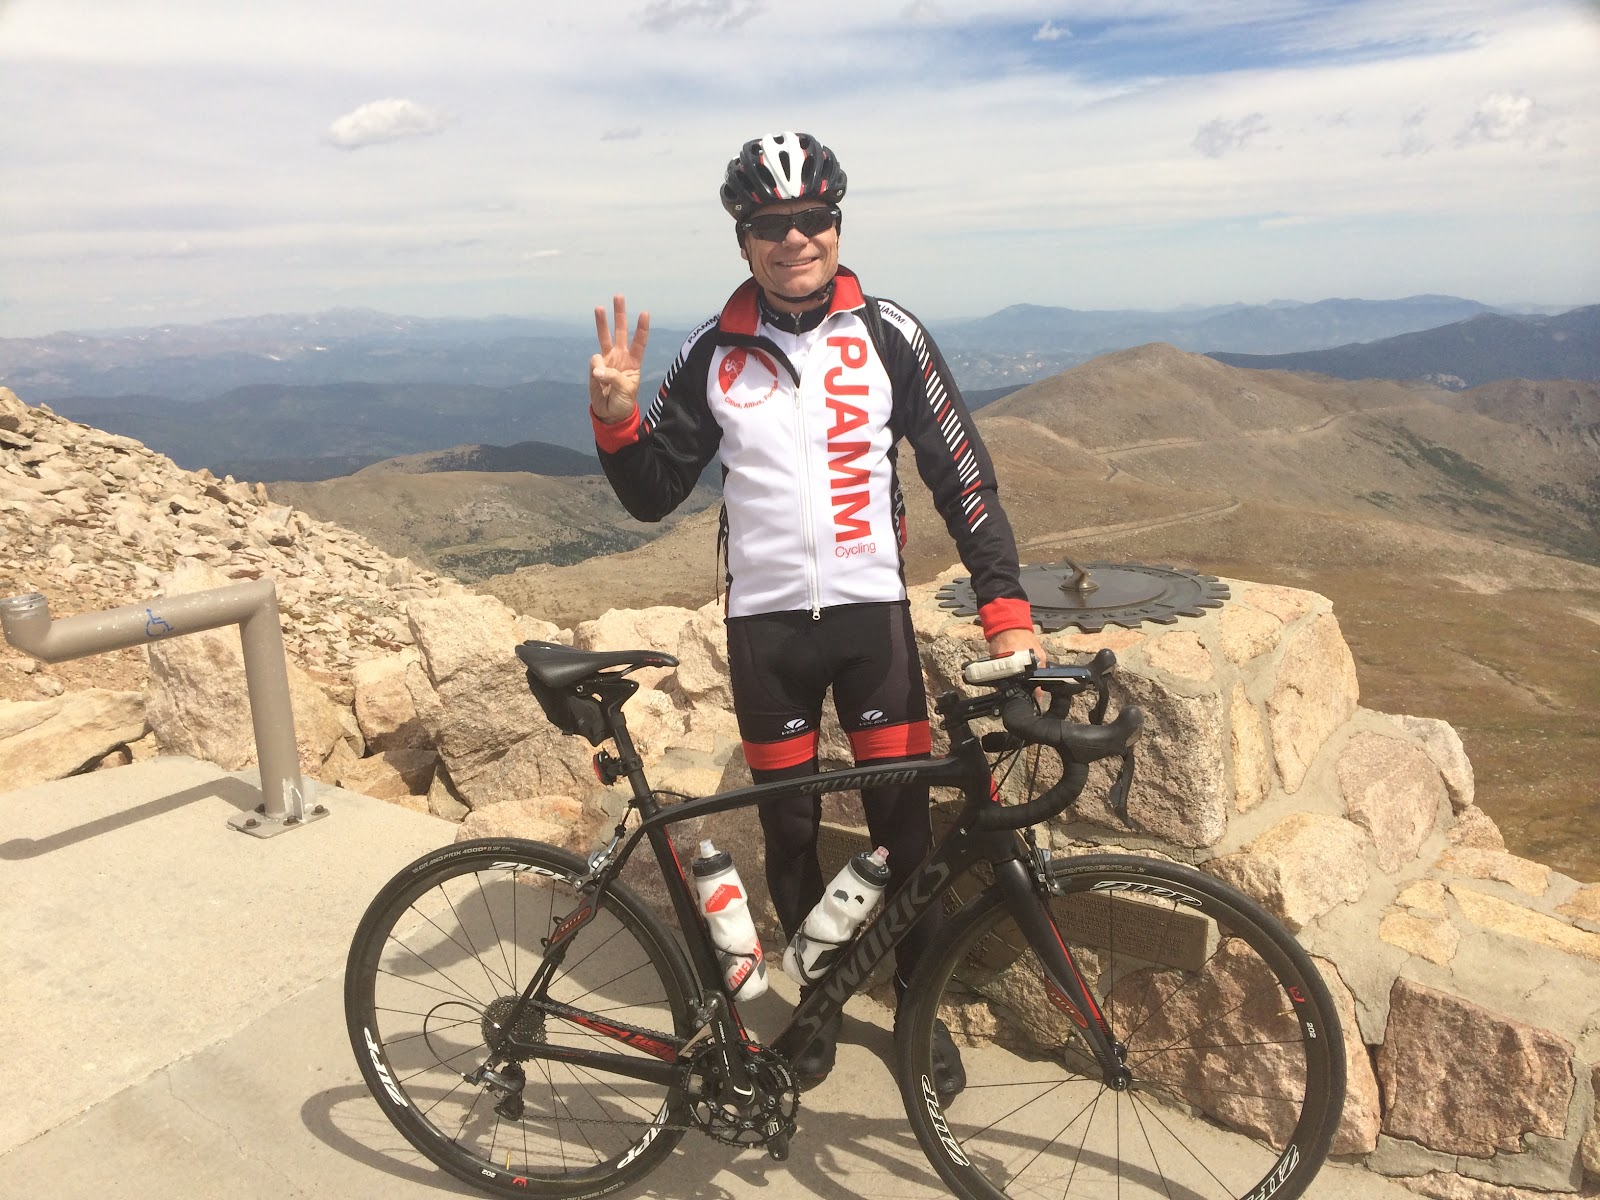 PJAMM cyclist at summit of Mount Evans with bicycle